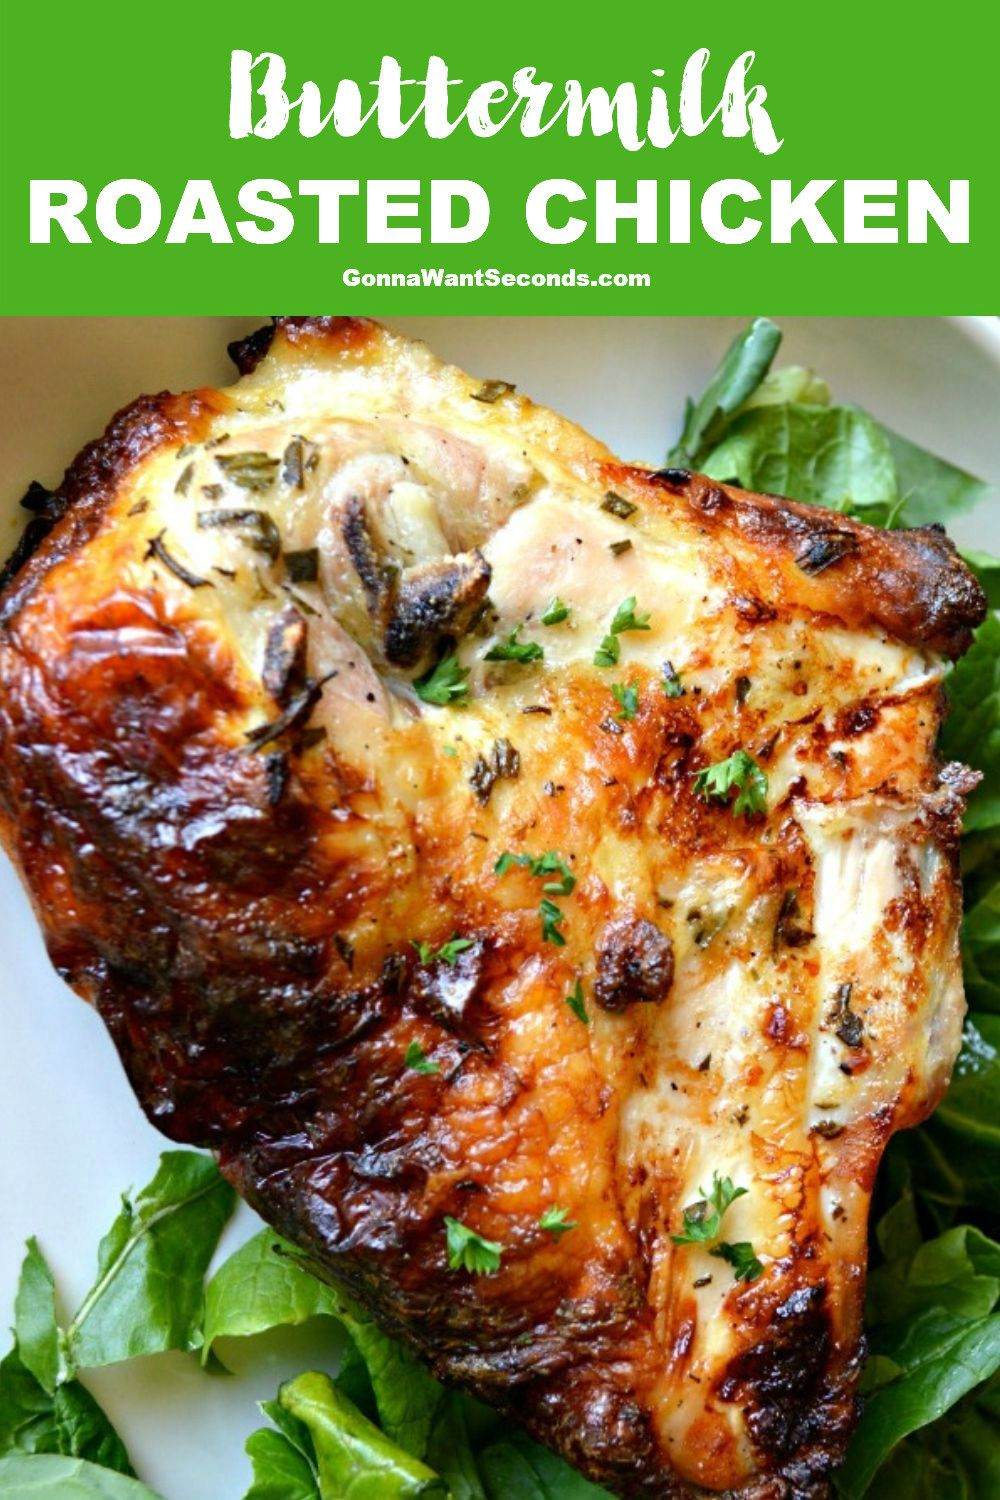 Buttermilk Roasted Chicken Recipe In 2020 Roast Chicken Recipes Easy Chicken Recipes Roasted Chicken